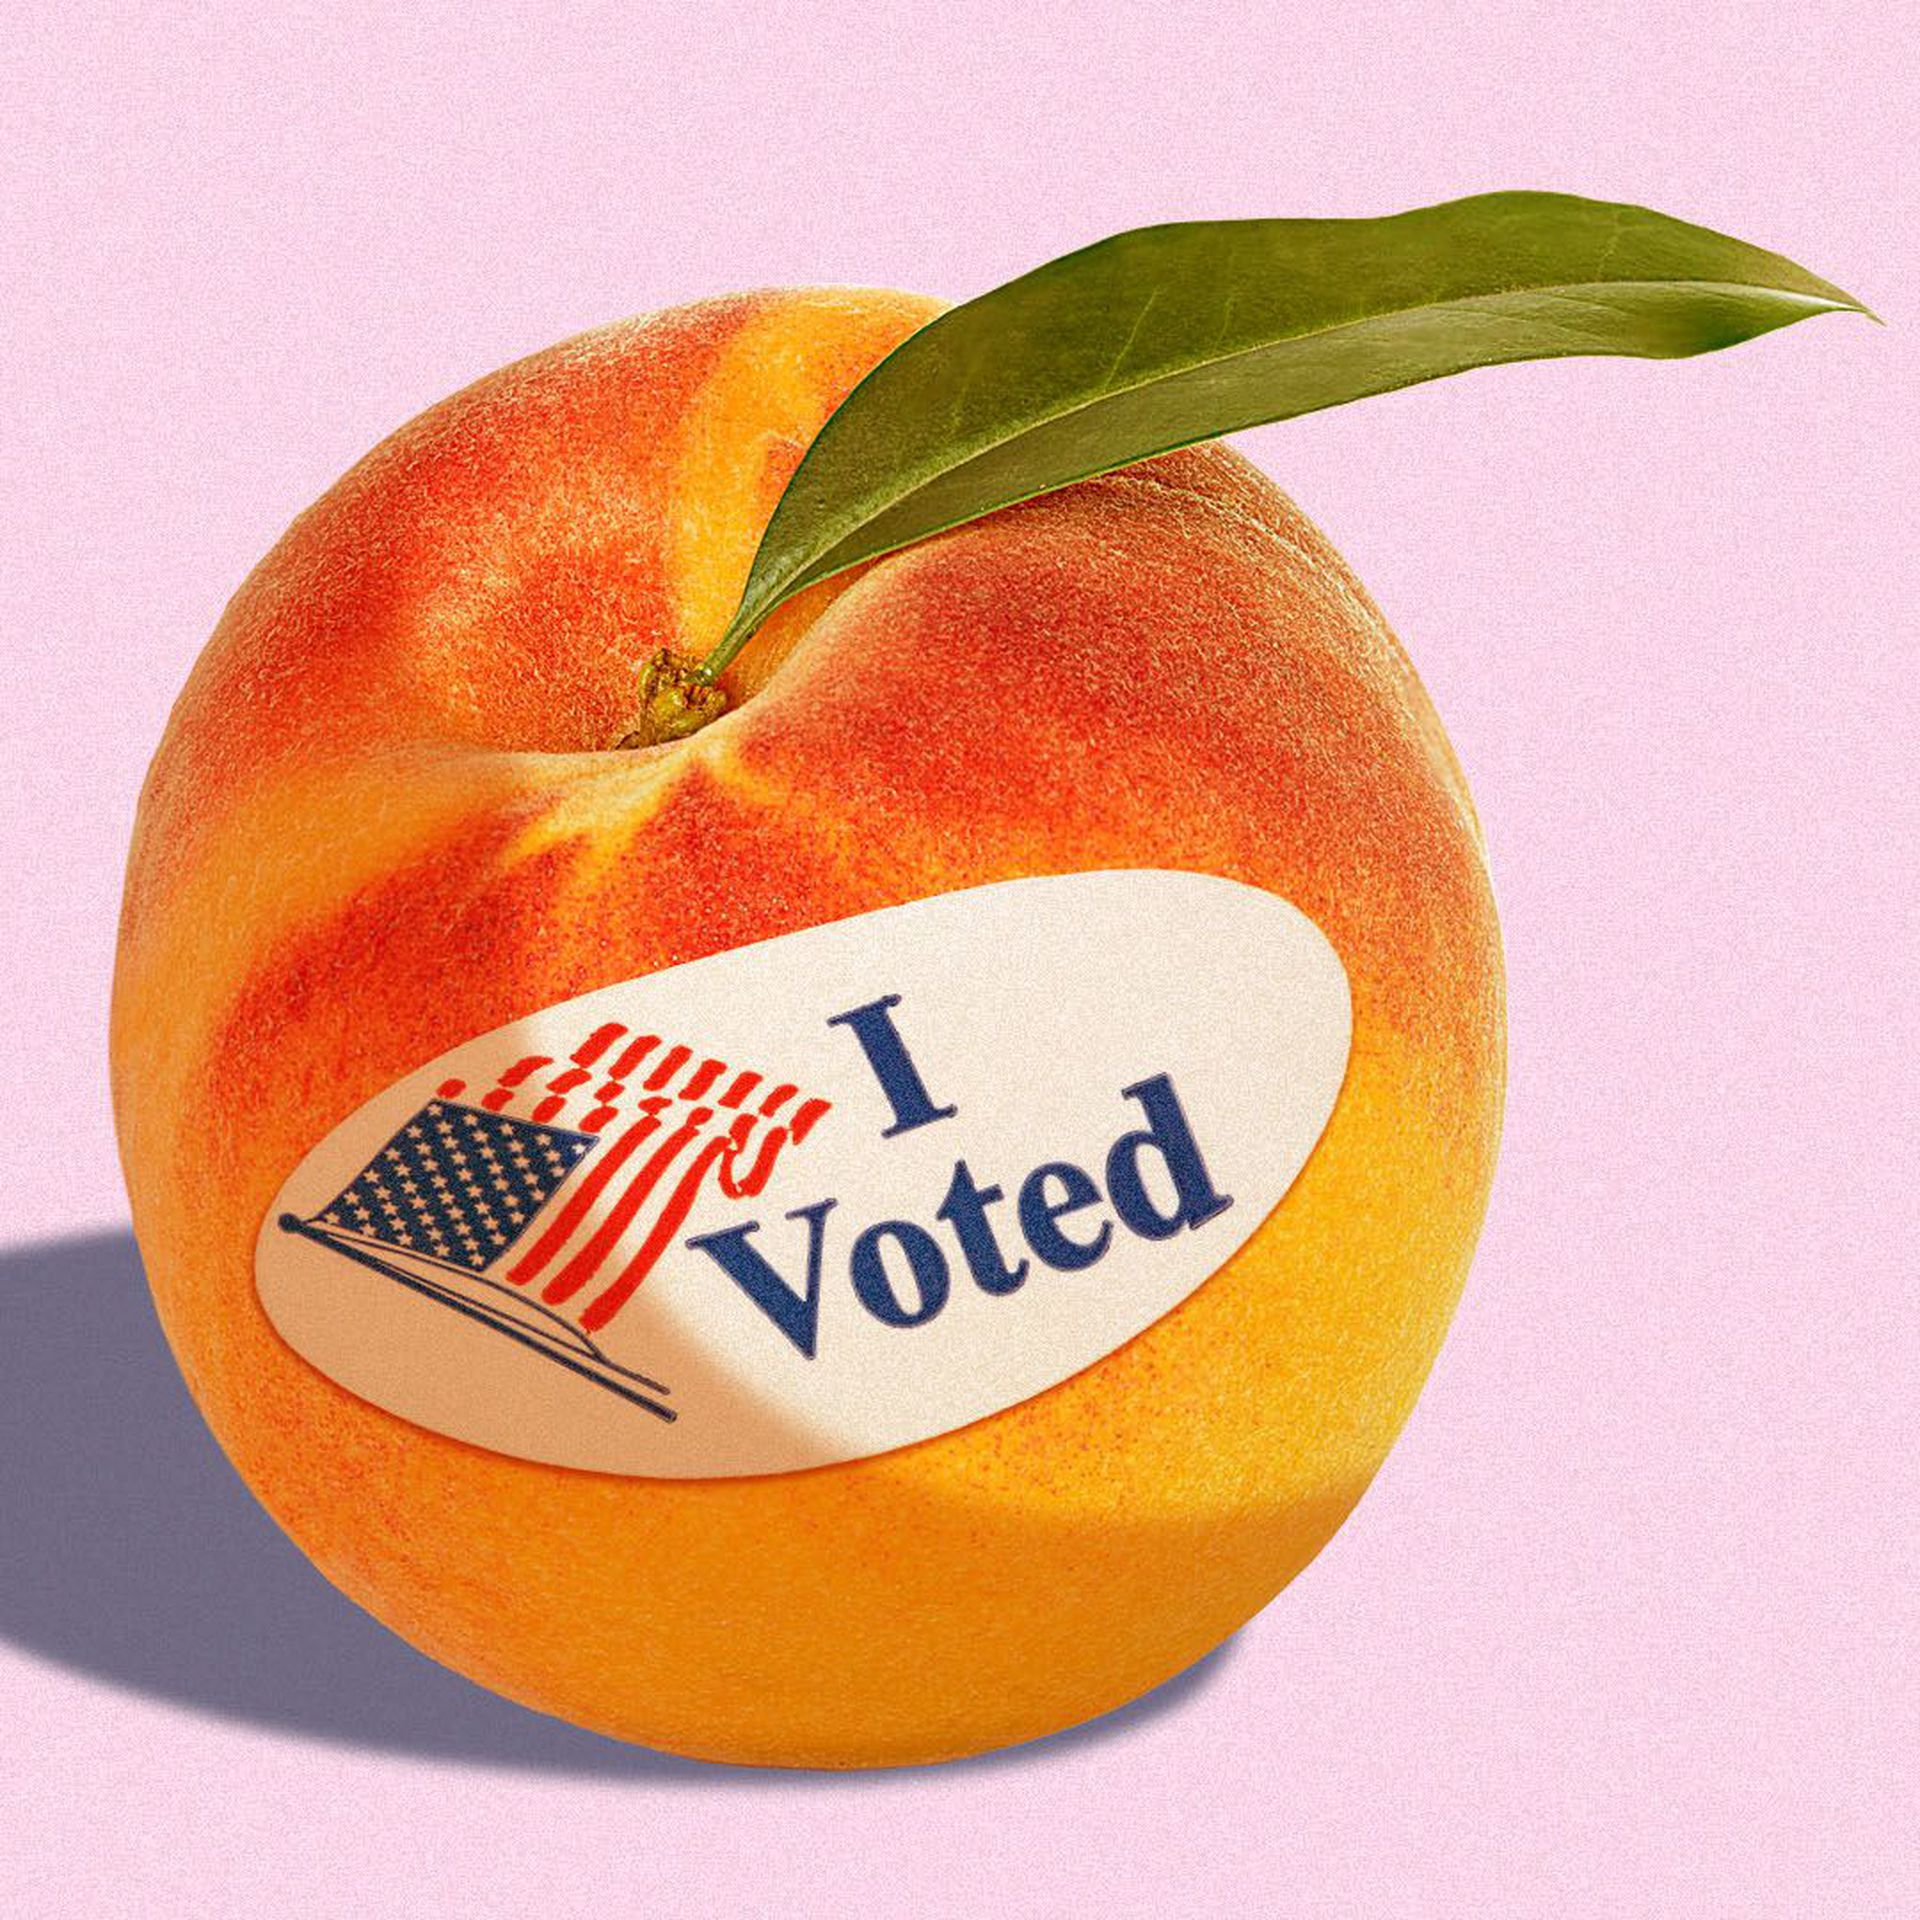 """Illustration of a peach with an """"I voted"""" sticker on it"""